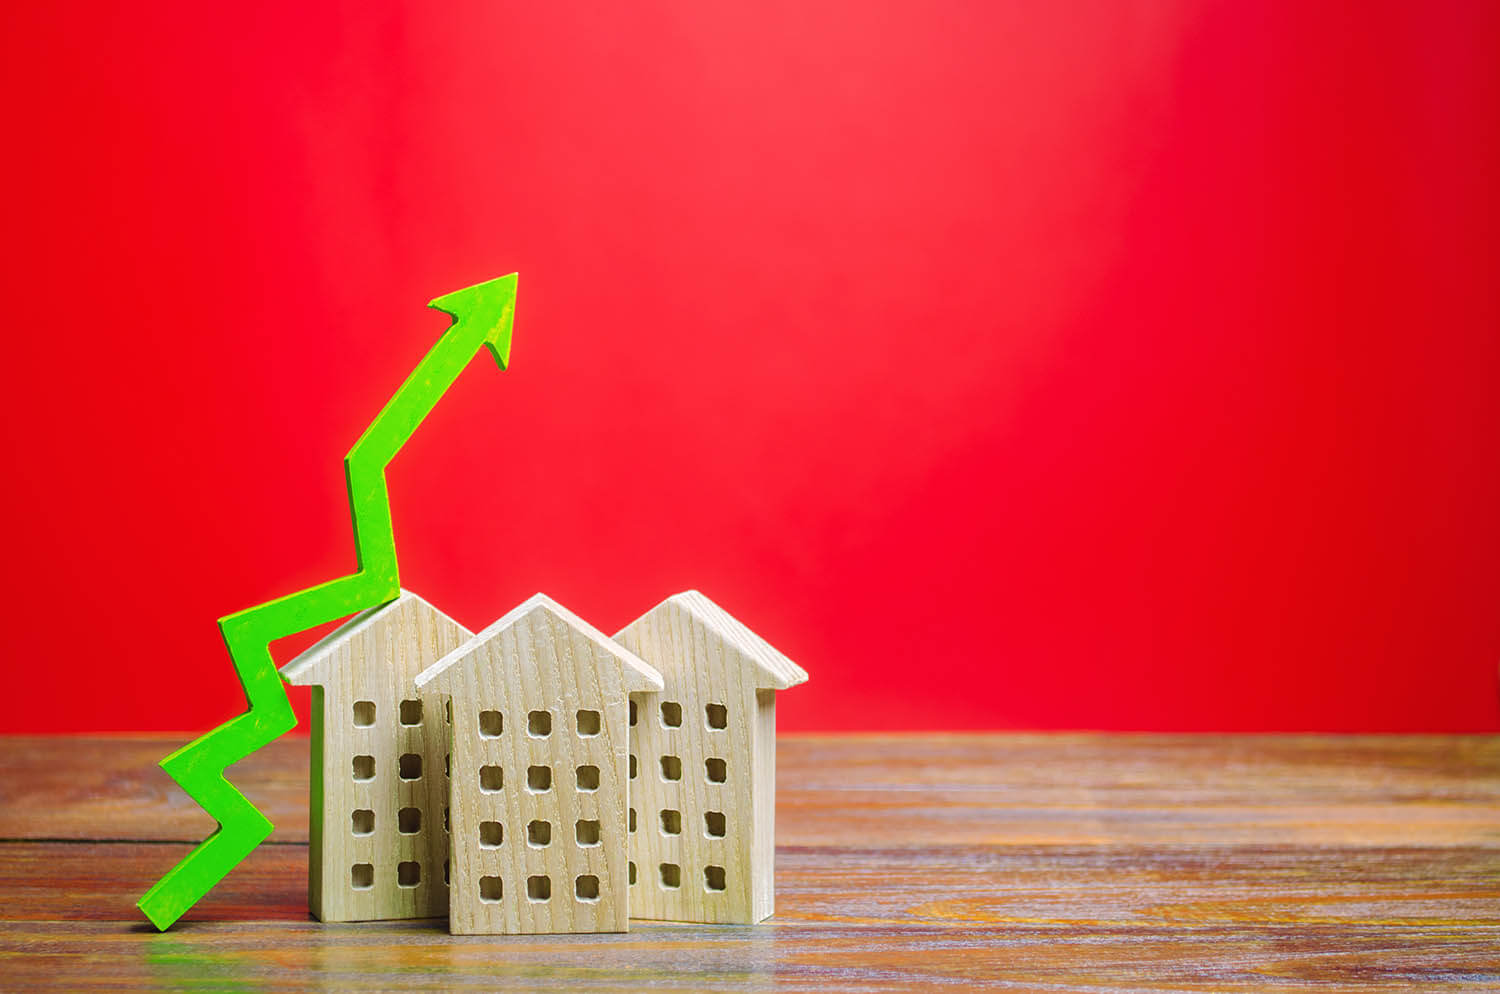 What are my thoughts on the current real estate market? Will it cool off soon?